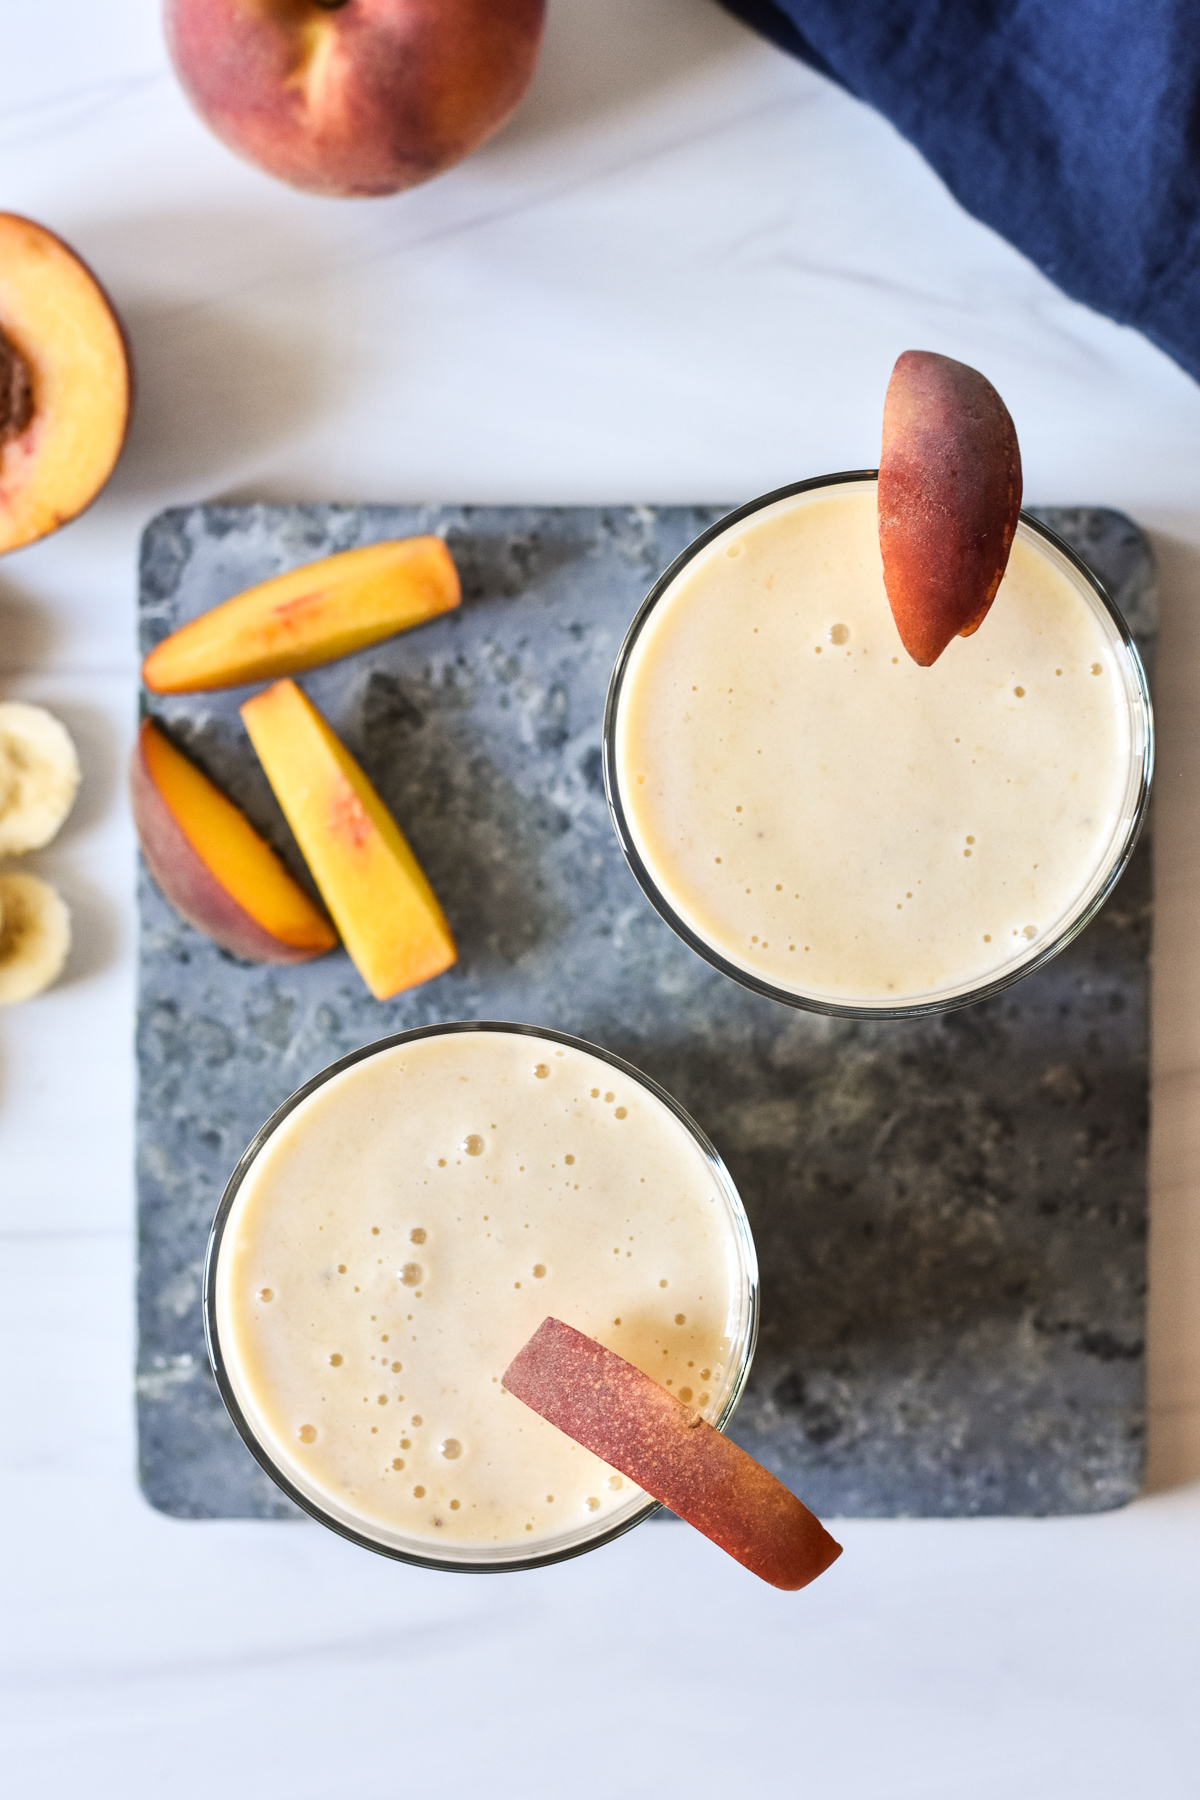 two smoothies with peach slices on rim